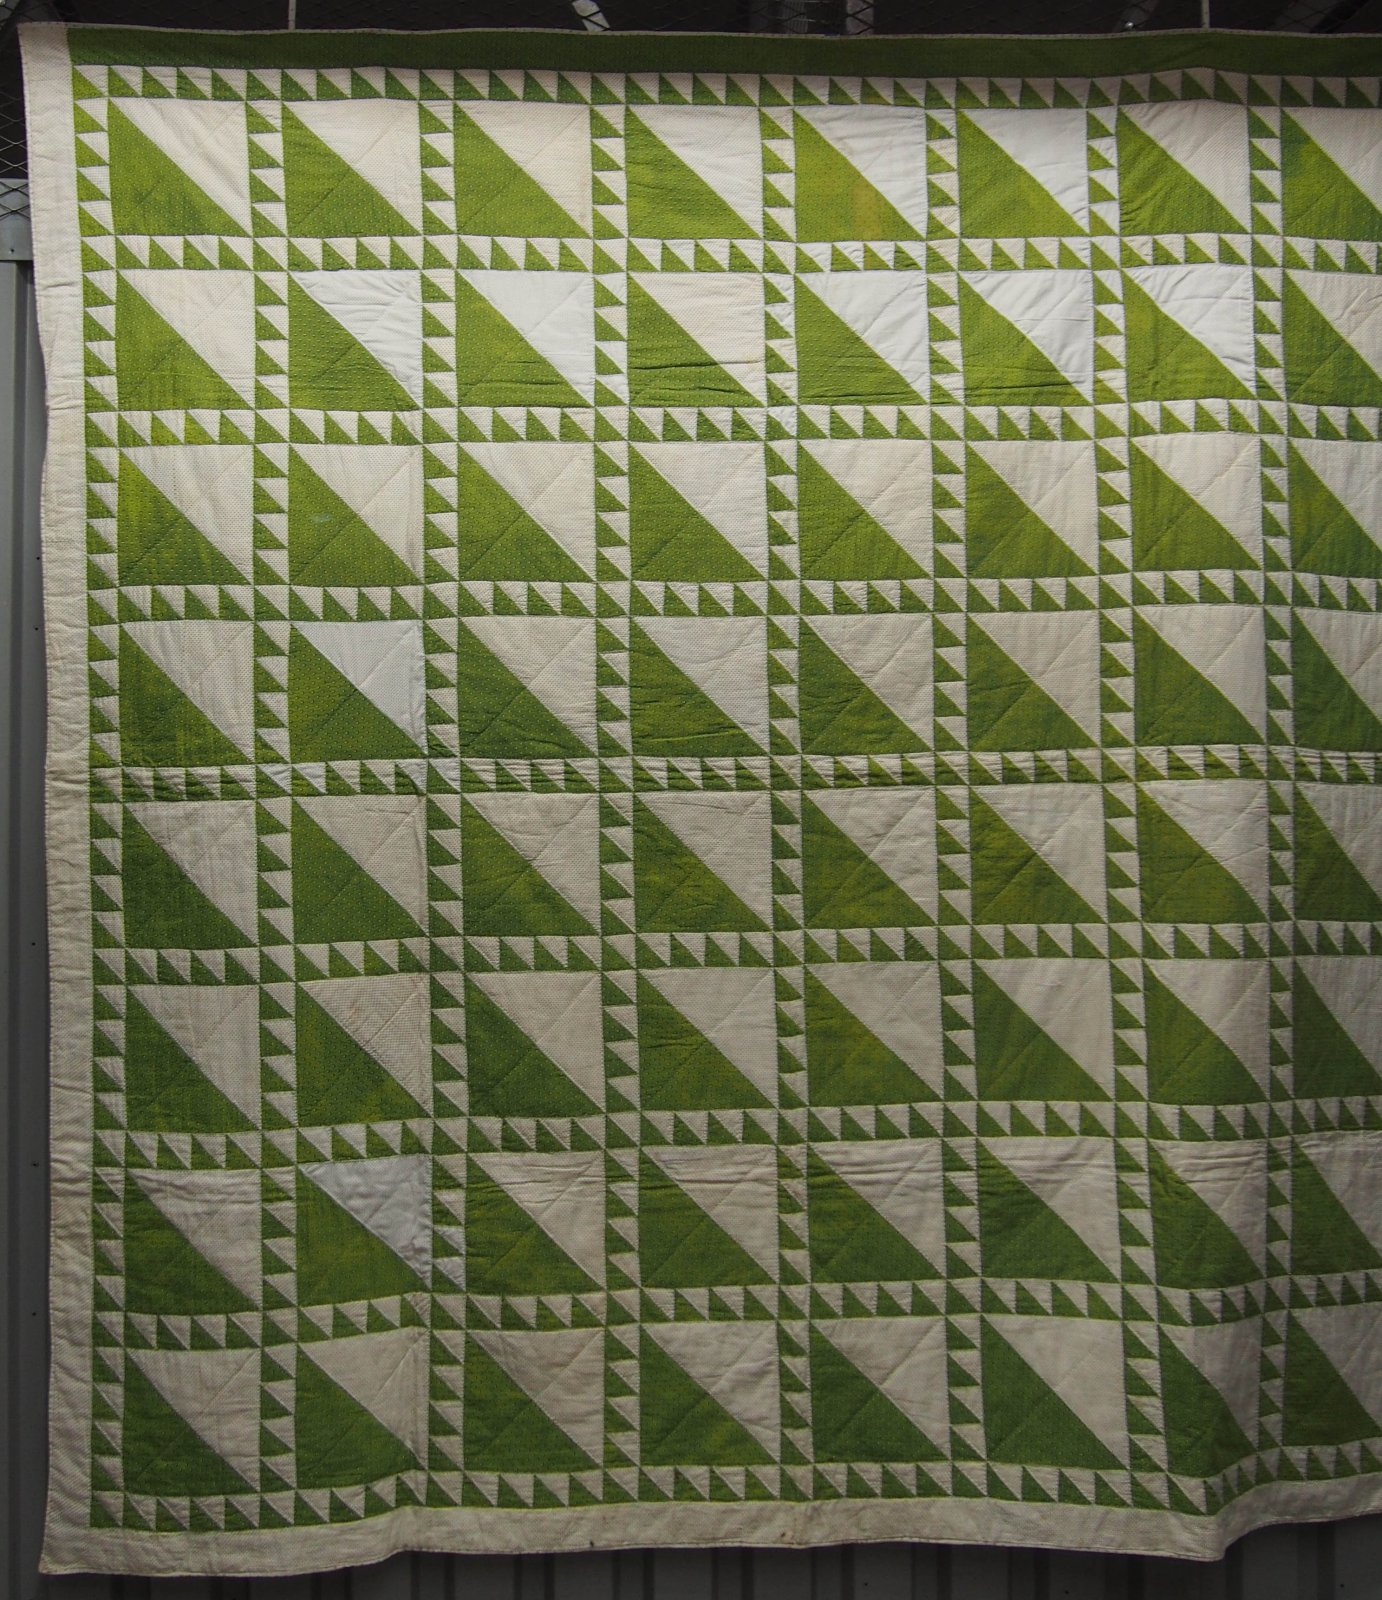 LADY OF THE LAKE EARLY ANTIQUE QUILT chartreuse